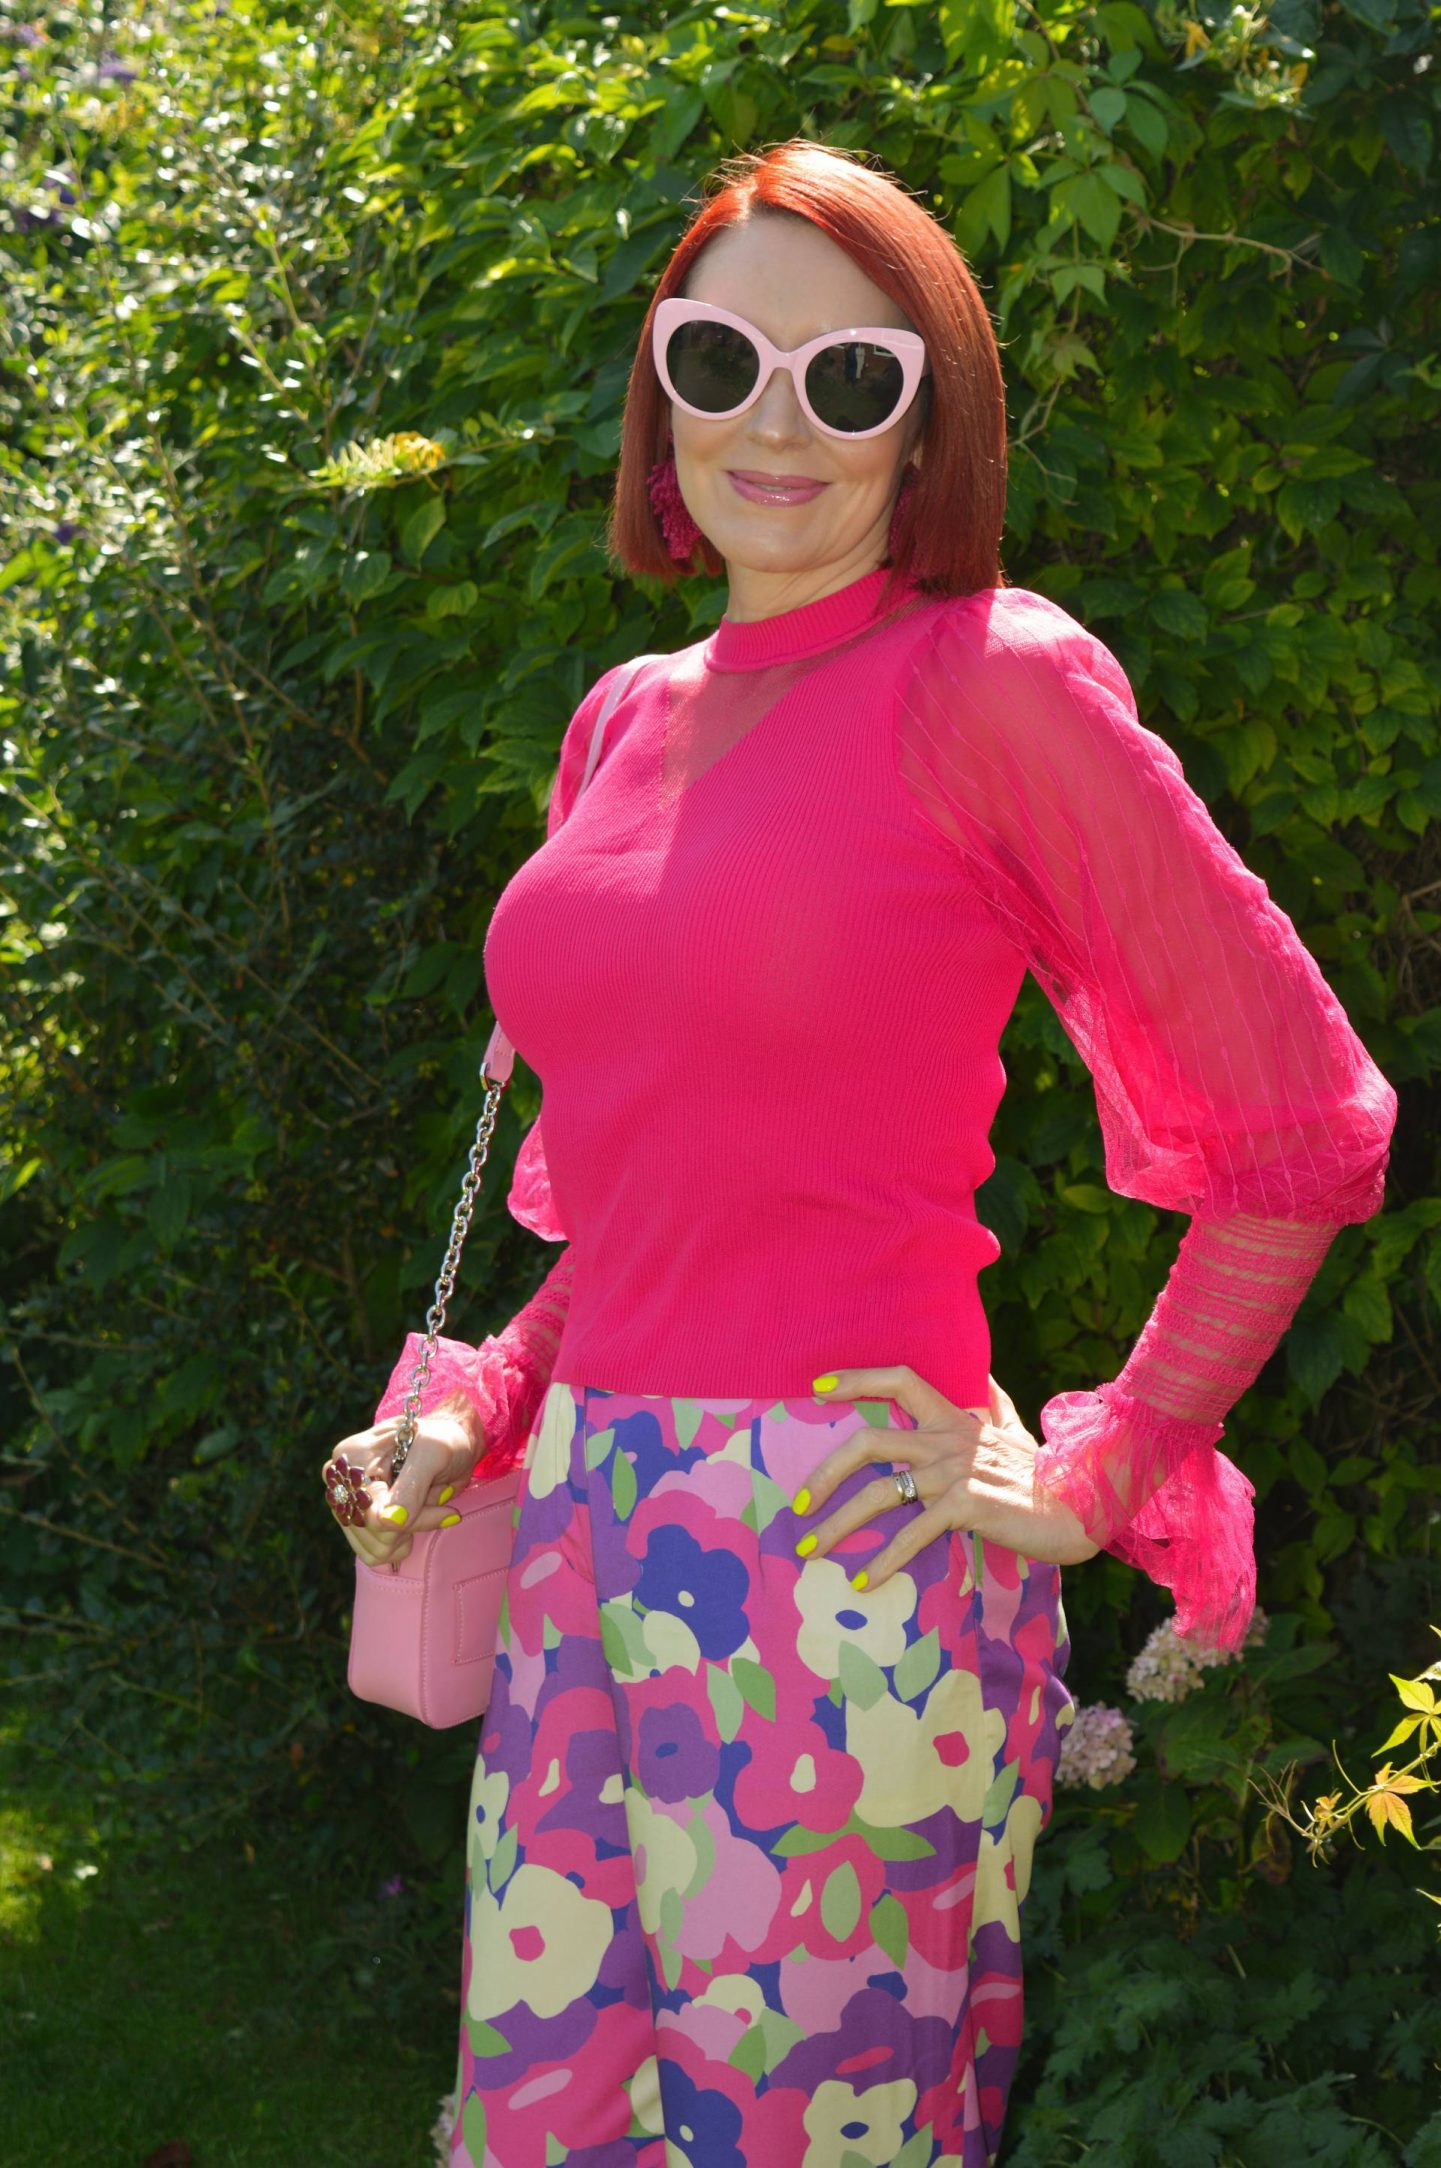 Styling Our Statement Sleeves - August's Style Not Age, River Island pink sheer sleeve top, Monki purple print trousers, River Island pink cat eye sunglasses, Nali pink camera bag